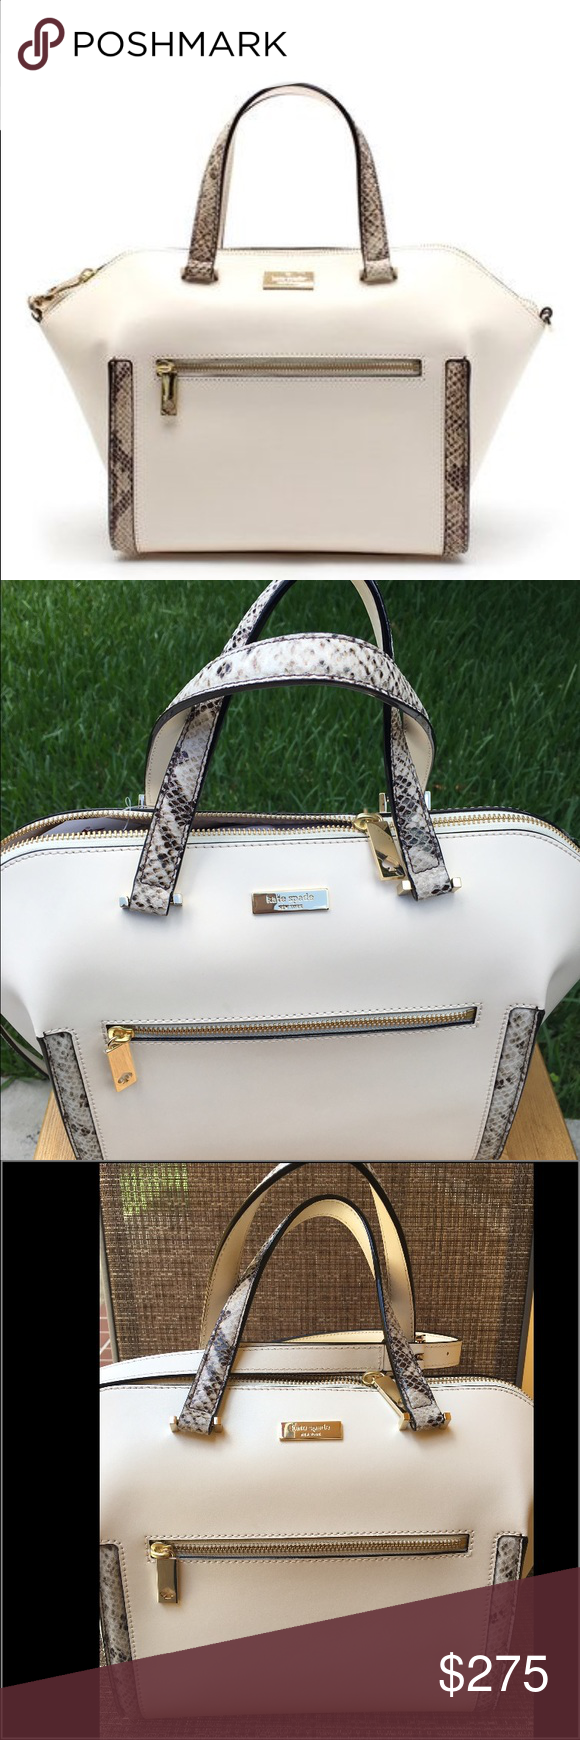 Kate Spade Savannah Parliament Square Handbag Kate Spade Savannah Parliament Square Handbag.  Brand new with tags.  Classic handbag for any occasion.  Never goes out of style .  Gorgeous, classy and chic for any season!! kate spade Bags Satchels